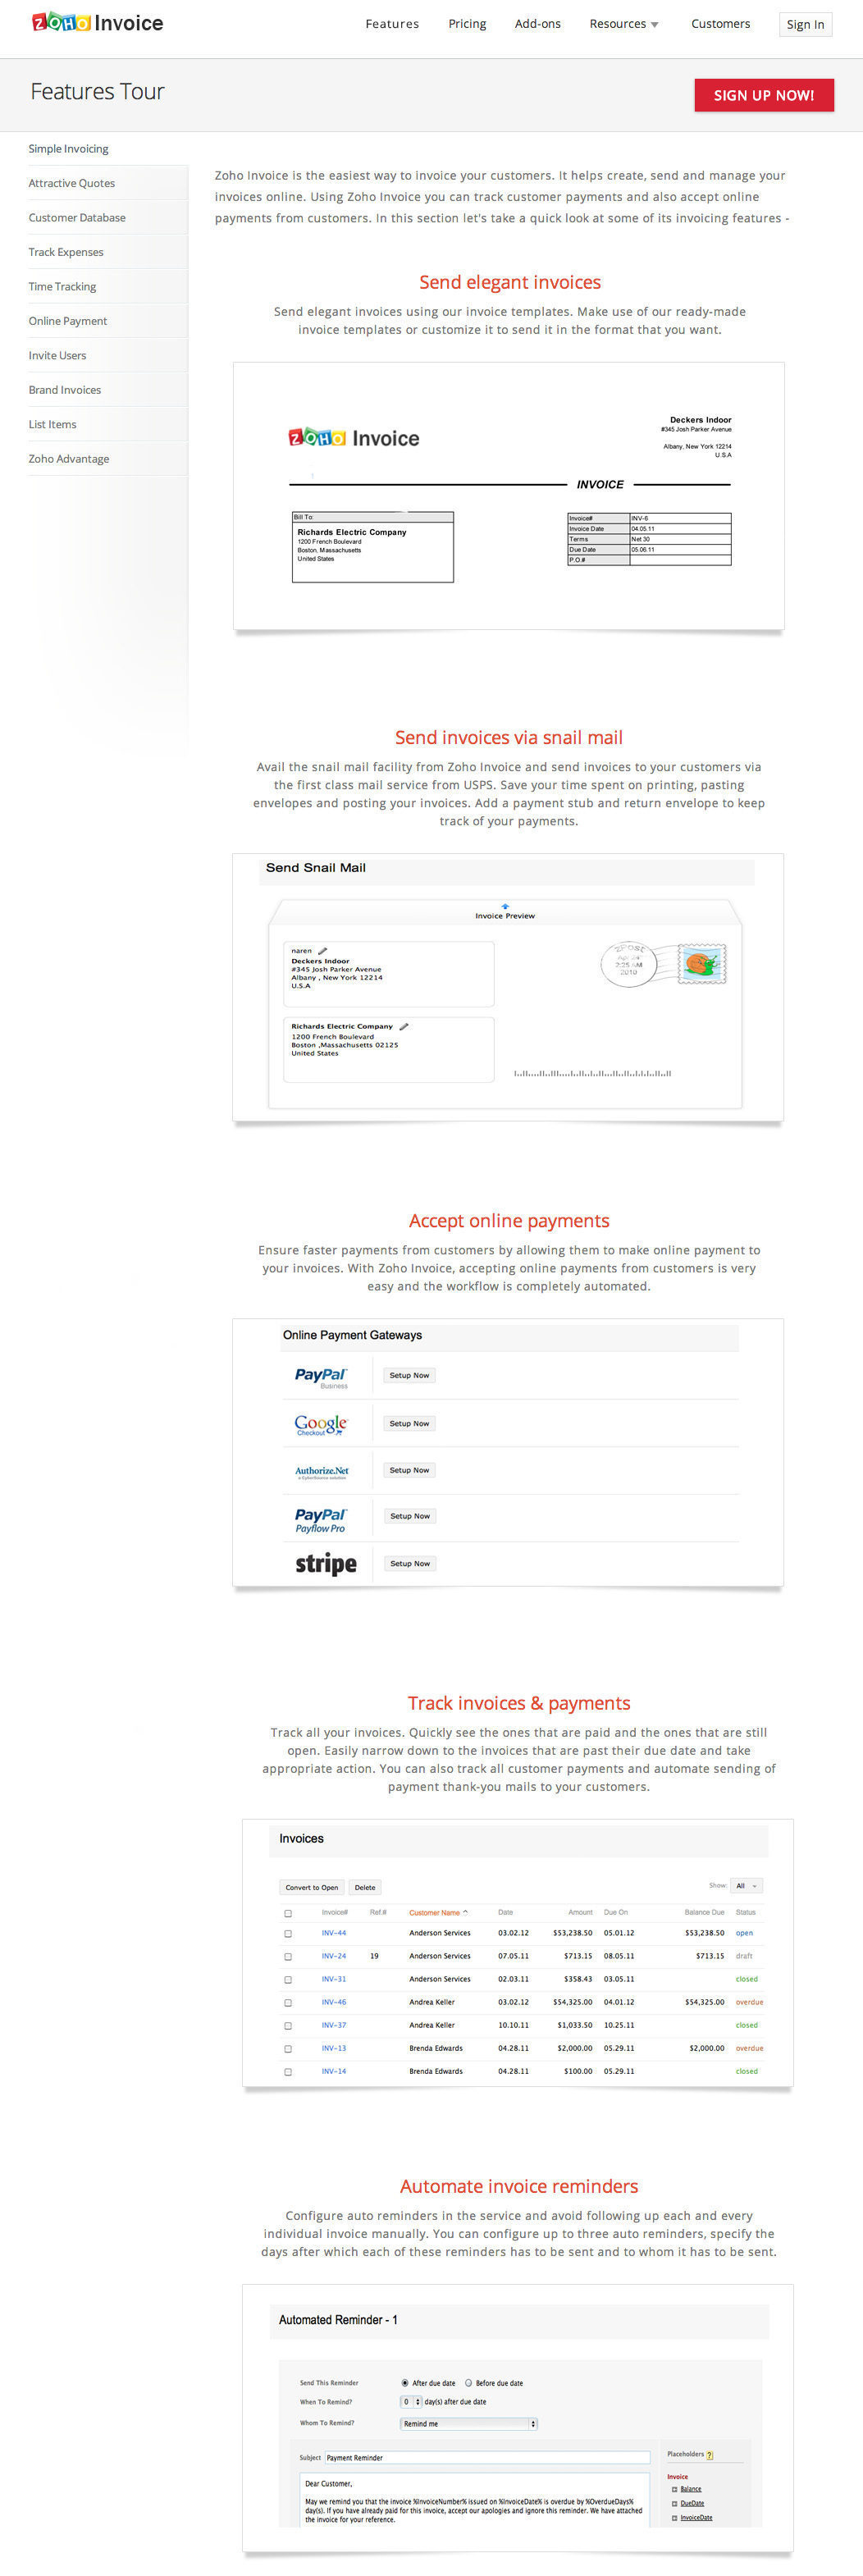 Aldiablosus  Seductive Top  Complaints And Reviews About Zoho Invoice With Inspiring Zoho Invoice Pricing Zoho Invoice  Simple Invoicing  With Amusing Invoice Pads Also Invoice Template Word Download Free In Addition Quickbooks Online Customize Invoice And Digital Invoice As Well As Small Business Invoice Template Additionally Toyota Tacoma Invoice Price From Consumeraffairscom With Aldiablosus  Inspiring Top  Complaints And Reviews About Zoho Invoice With Amusing Zoho Invoice Pricing Zoho Invoice  Simple Invoicing  And Seductive Invoice Pads Also Invoice Template Word Download Free In Addition Quickbooks Online Customize Invoice From Consumeraffairscom